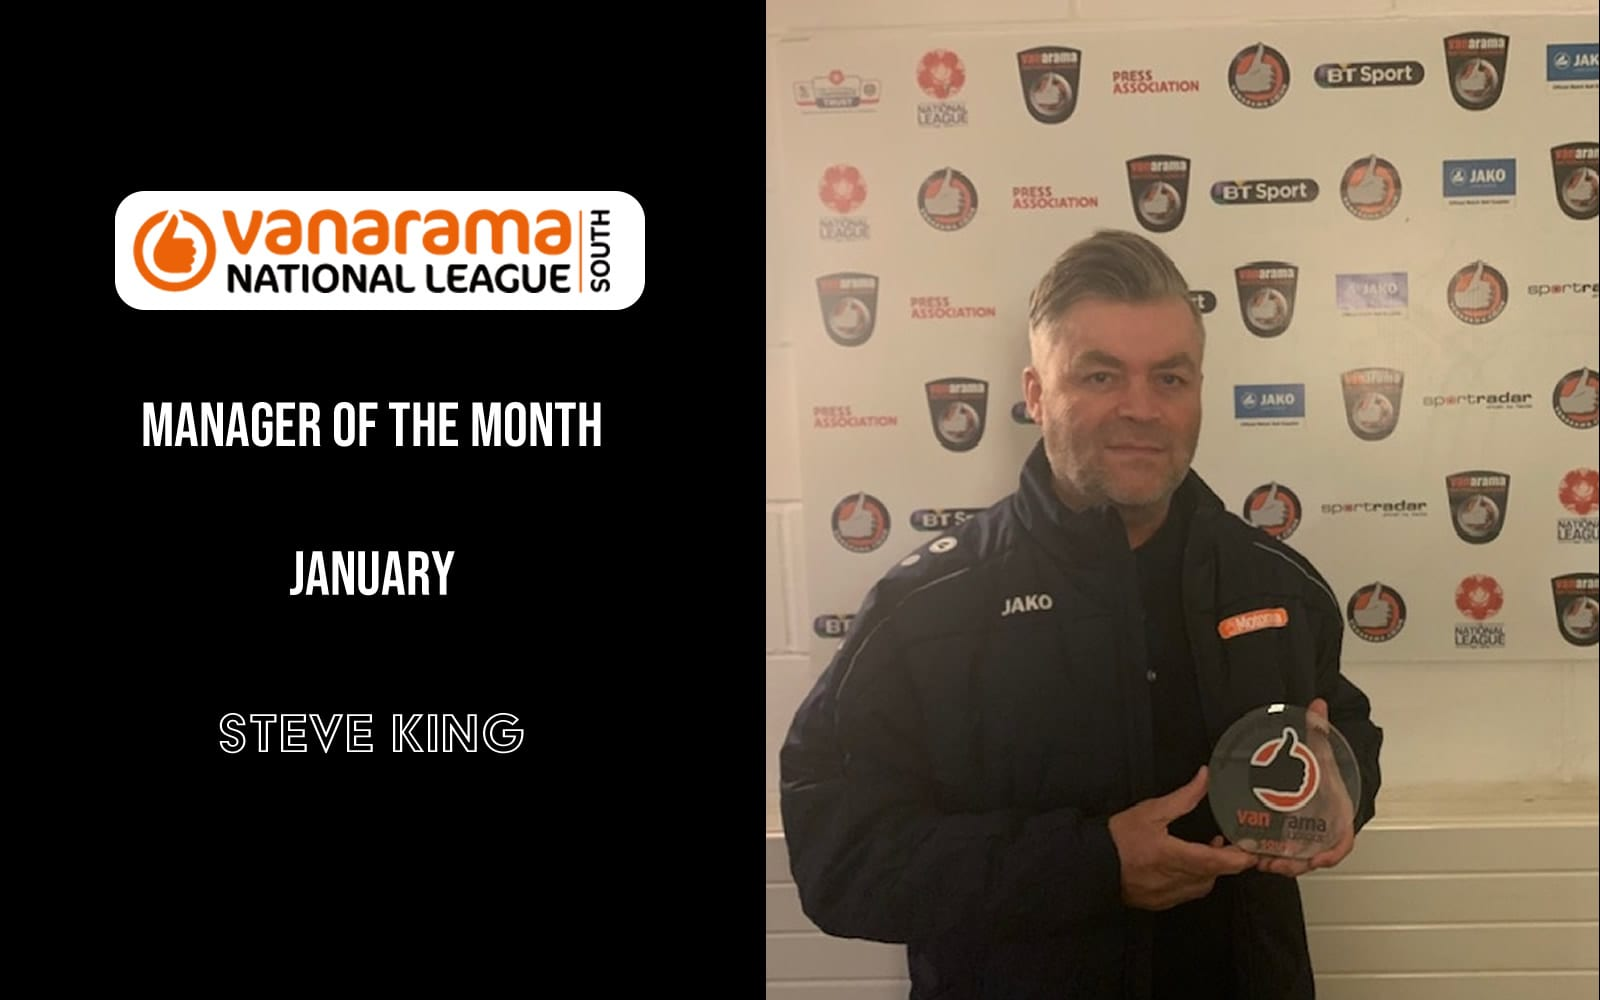 Steve King Manager of the Month Jan